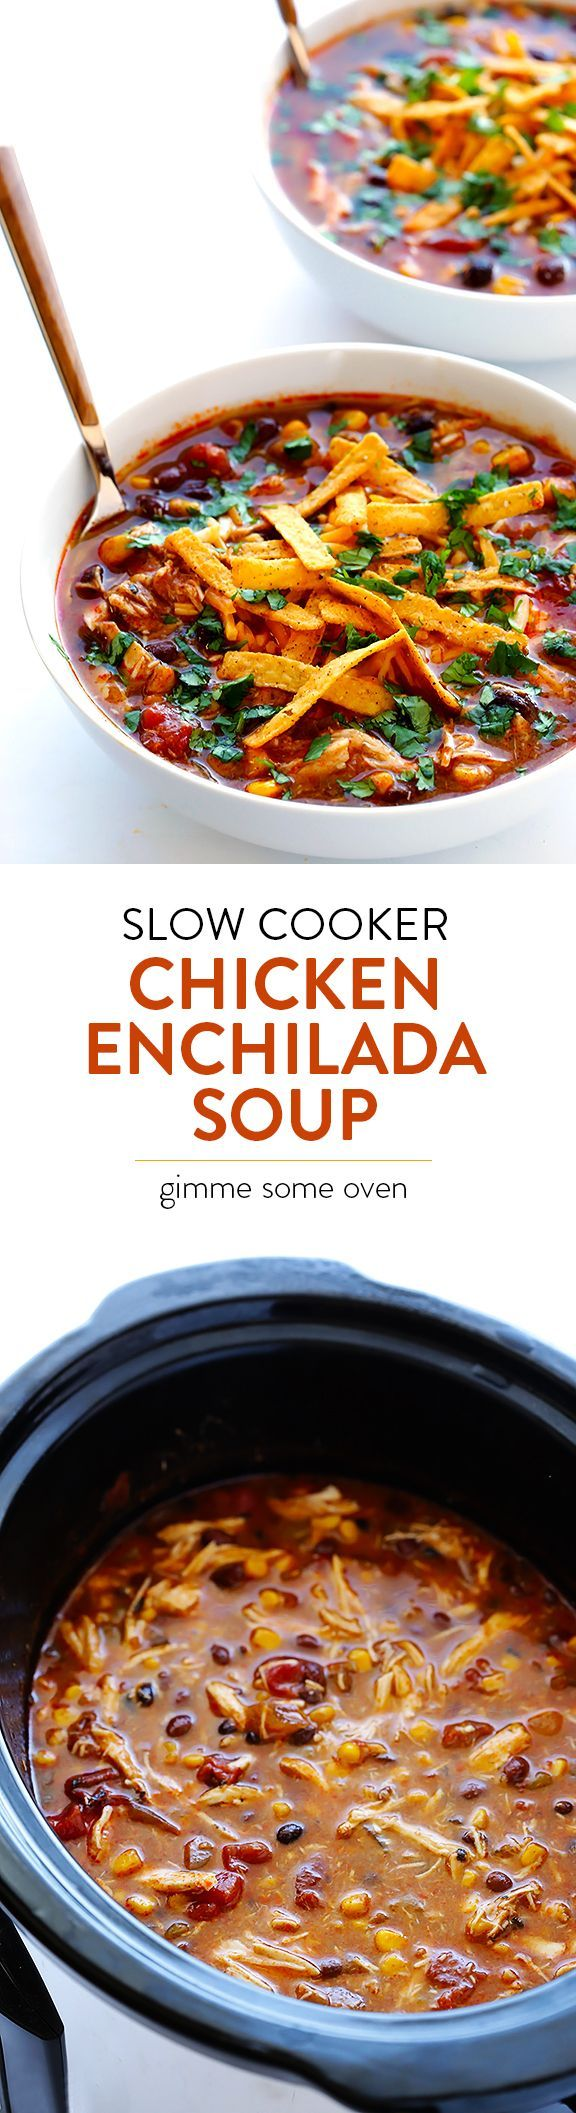 Let your crock pot do all of the work with this Slow Cooker Chicken Enchilada Soup. It only takes minutes to prep, and it's MUY delicioso!